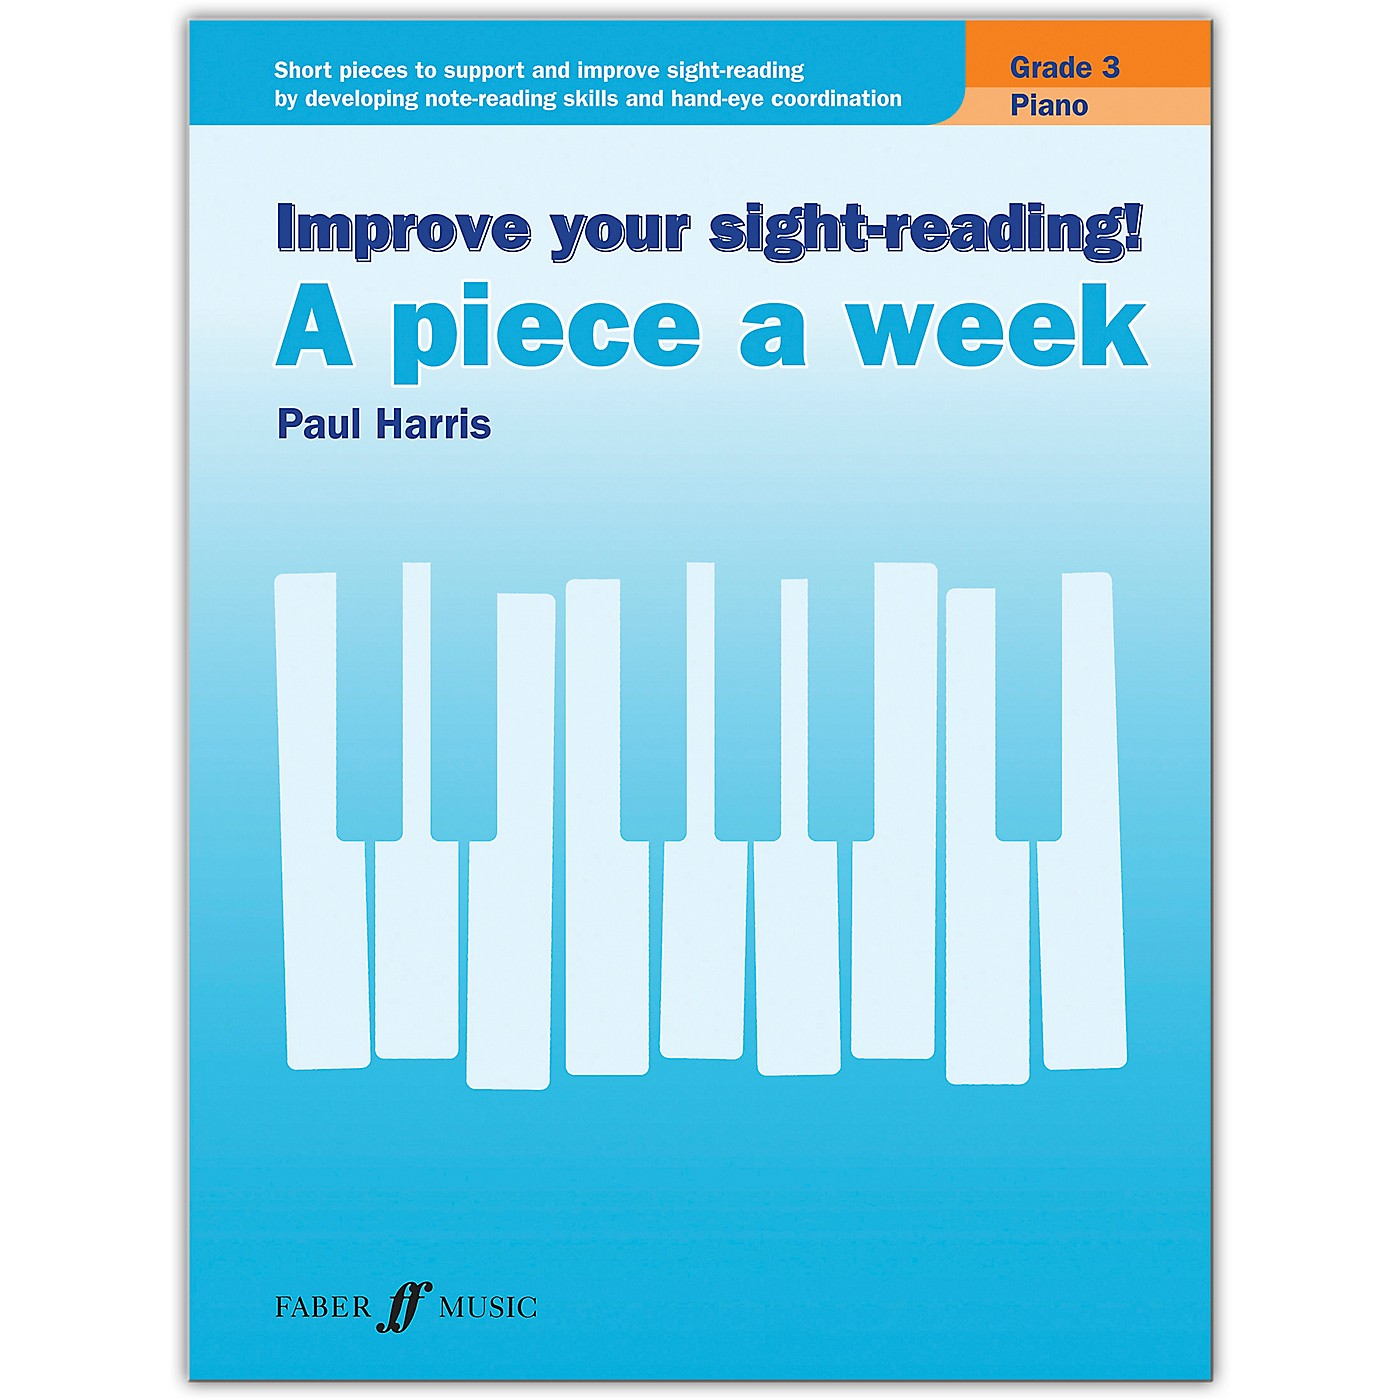 Faber Music LTD Improve Your Sight-reading! Piano: A Piece a Week, Grade 3 Late Elementary thumbnail